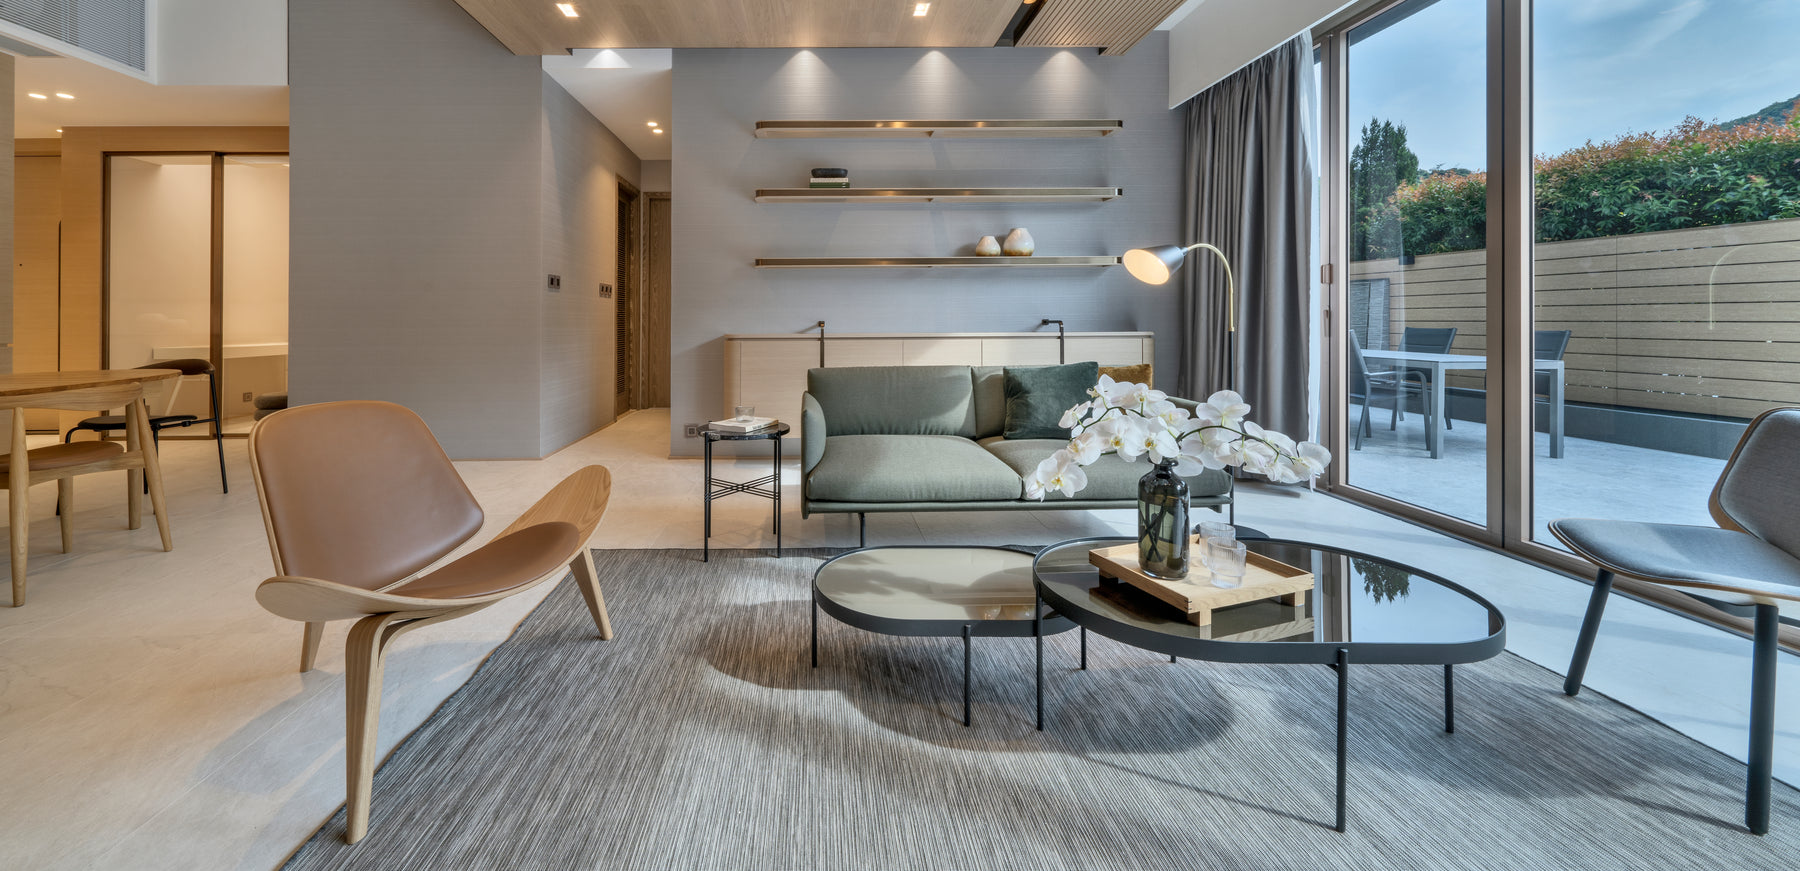 Comodo Interior Design Ltd. | Mount Pavilia | 2020